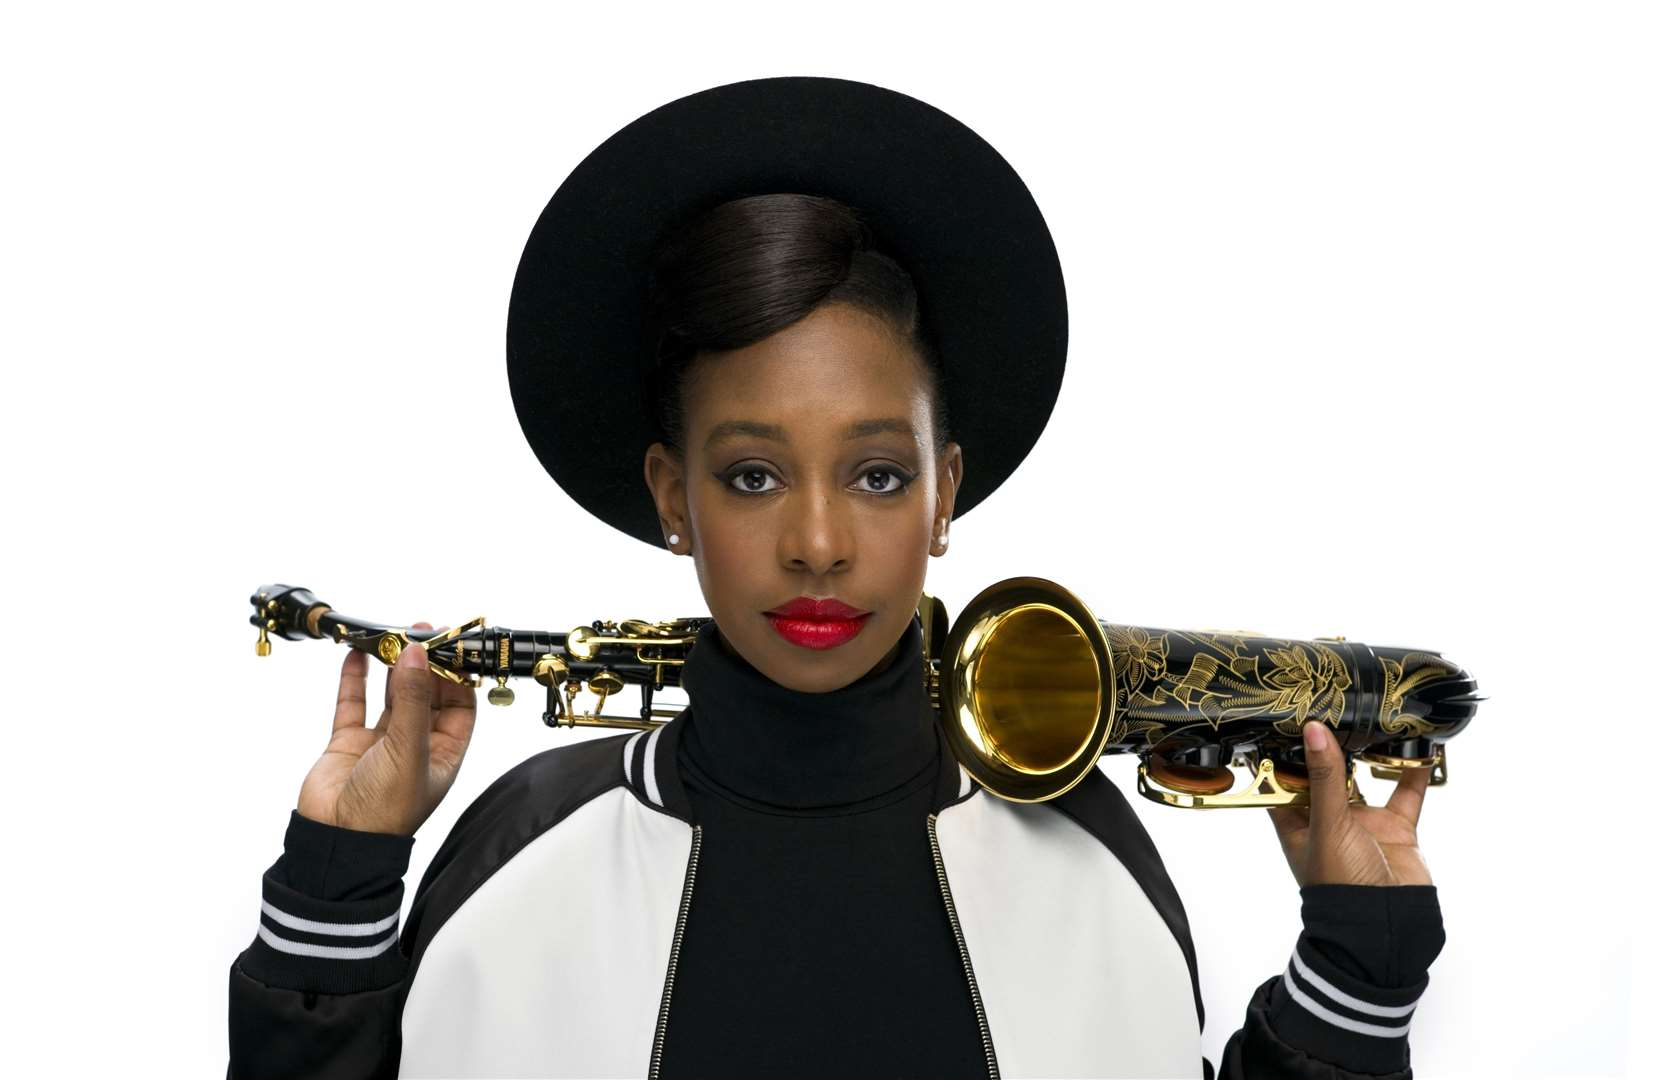 Award-winning saxophonist Yolanda Brown plays at the South Holland Centre in Spalding on Friday.